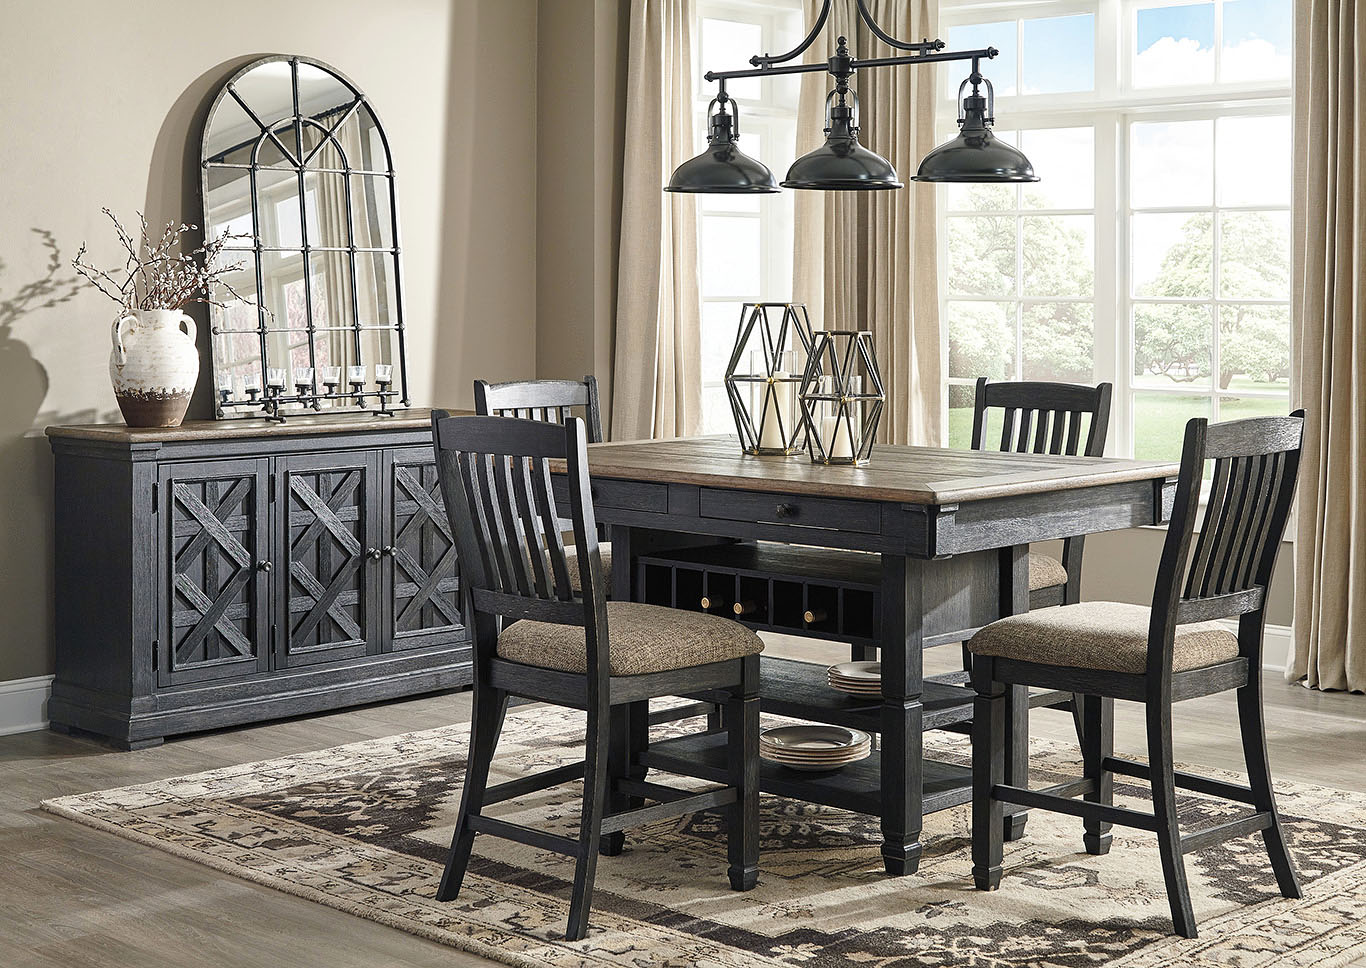 Tyler Creek Black/Grayish Brown 5 Piece Counter Height Dining Set,Signature Design By Ashley